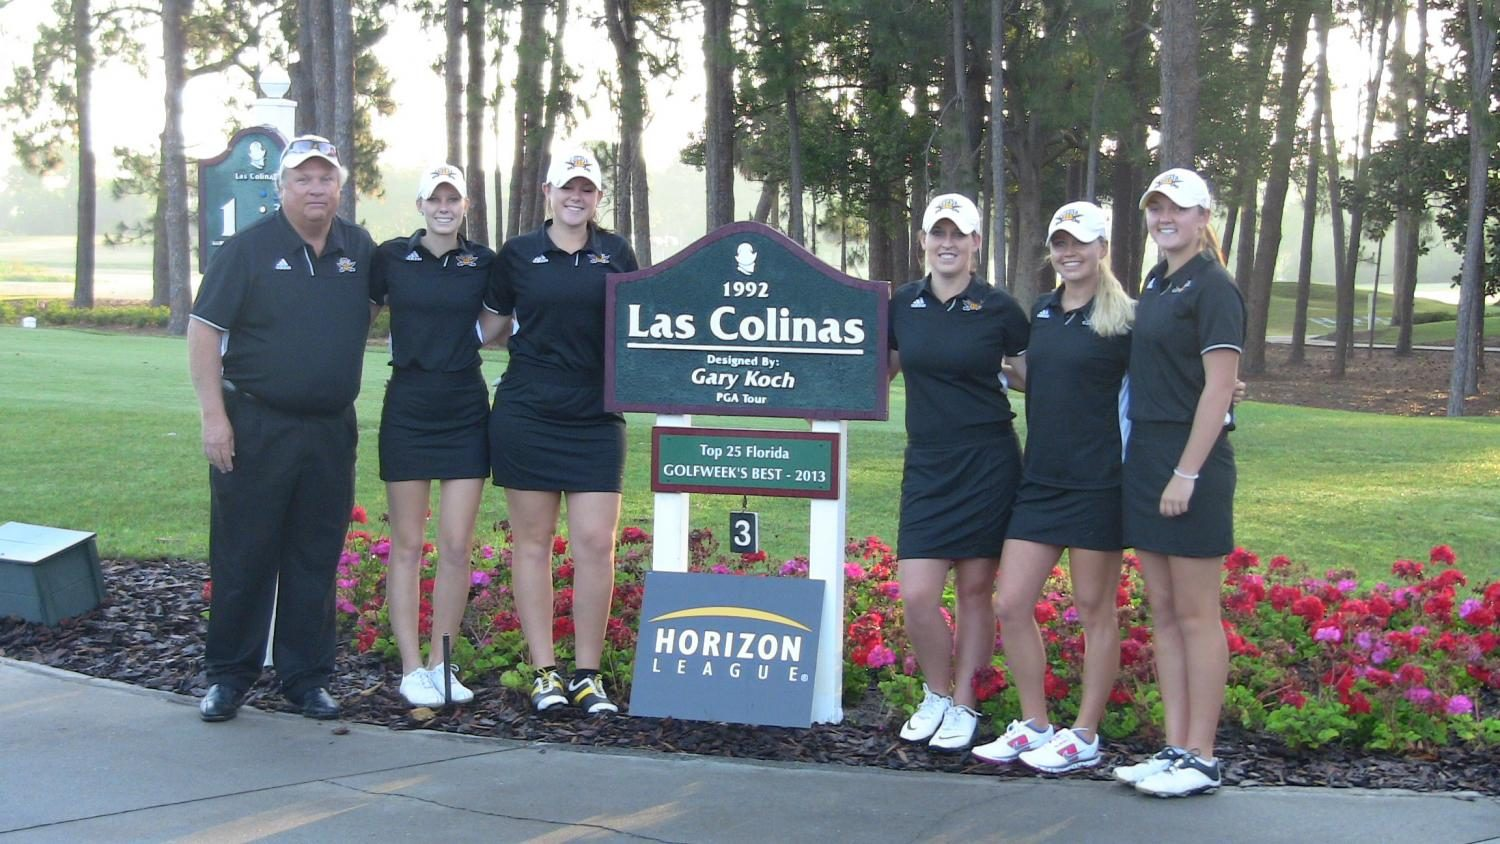 The NKU women's golf team poses for a picture at Las Colinas golf course during the Horizon League tournament